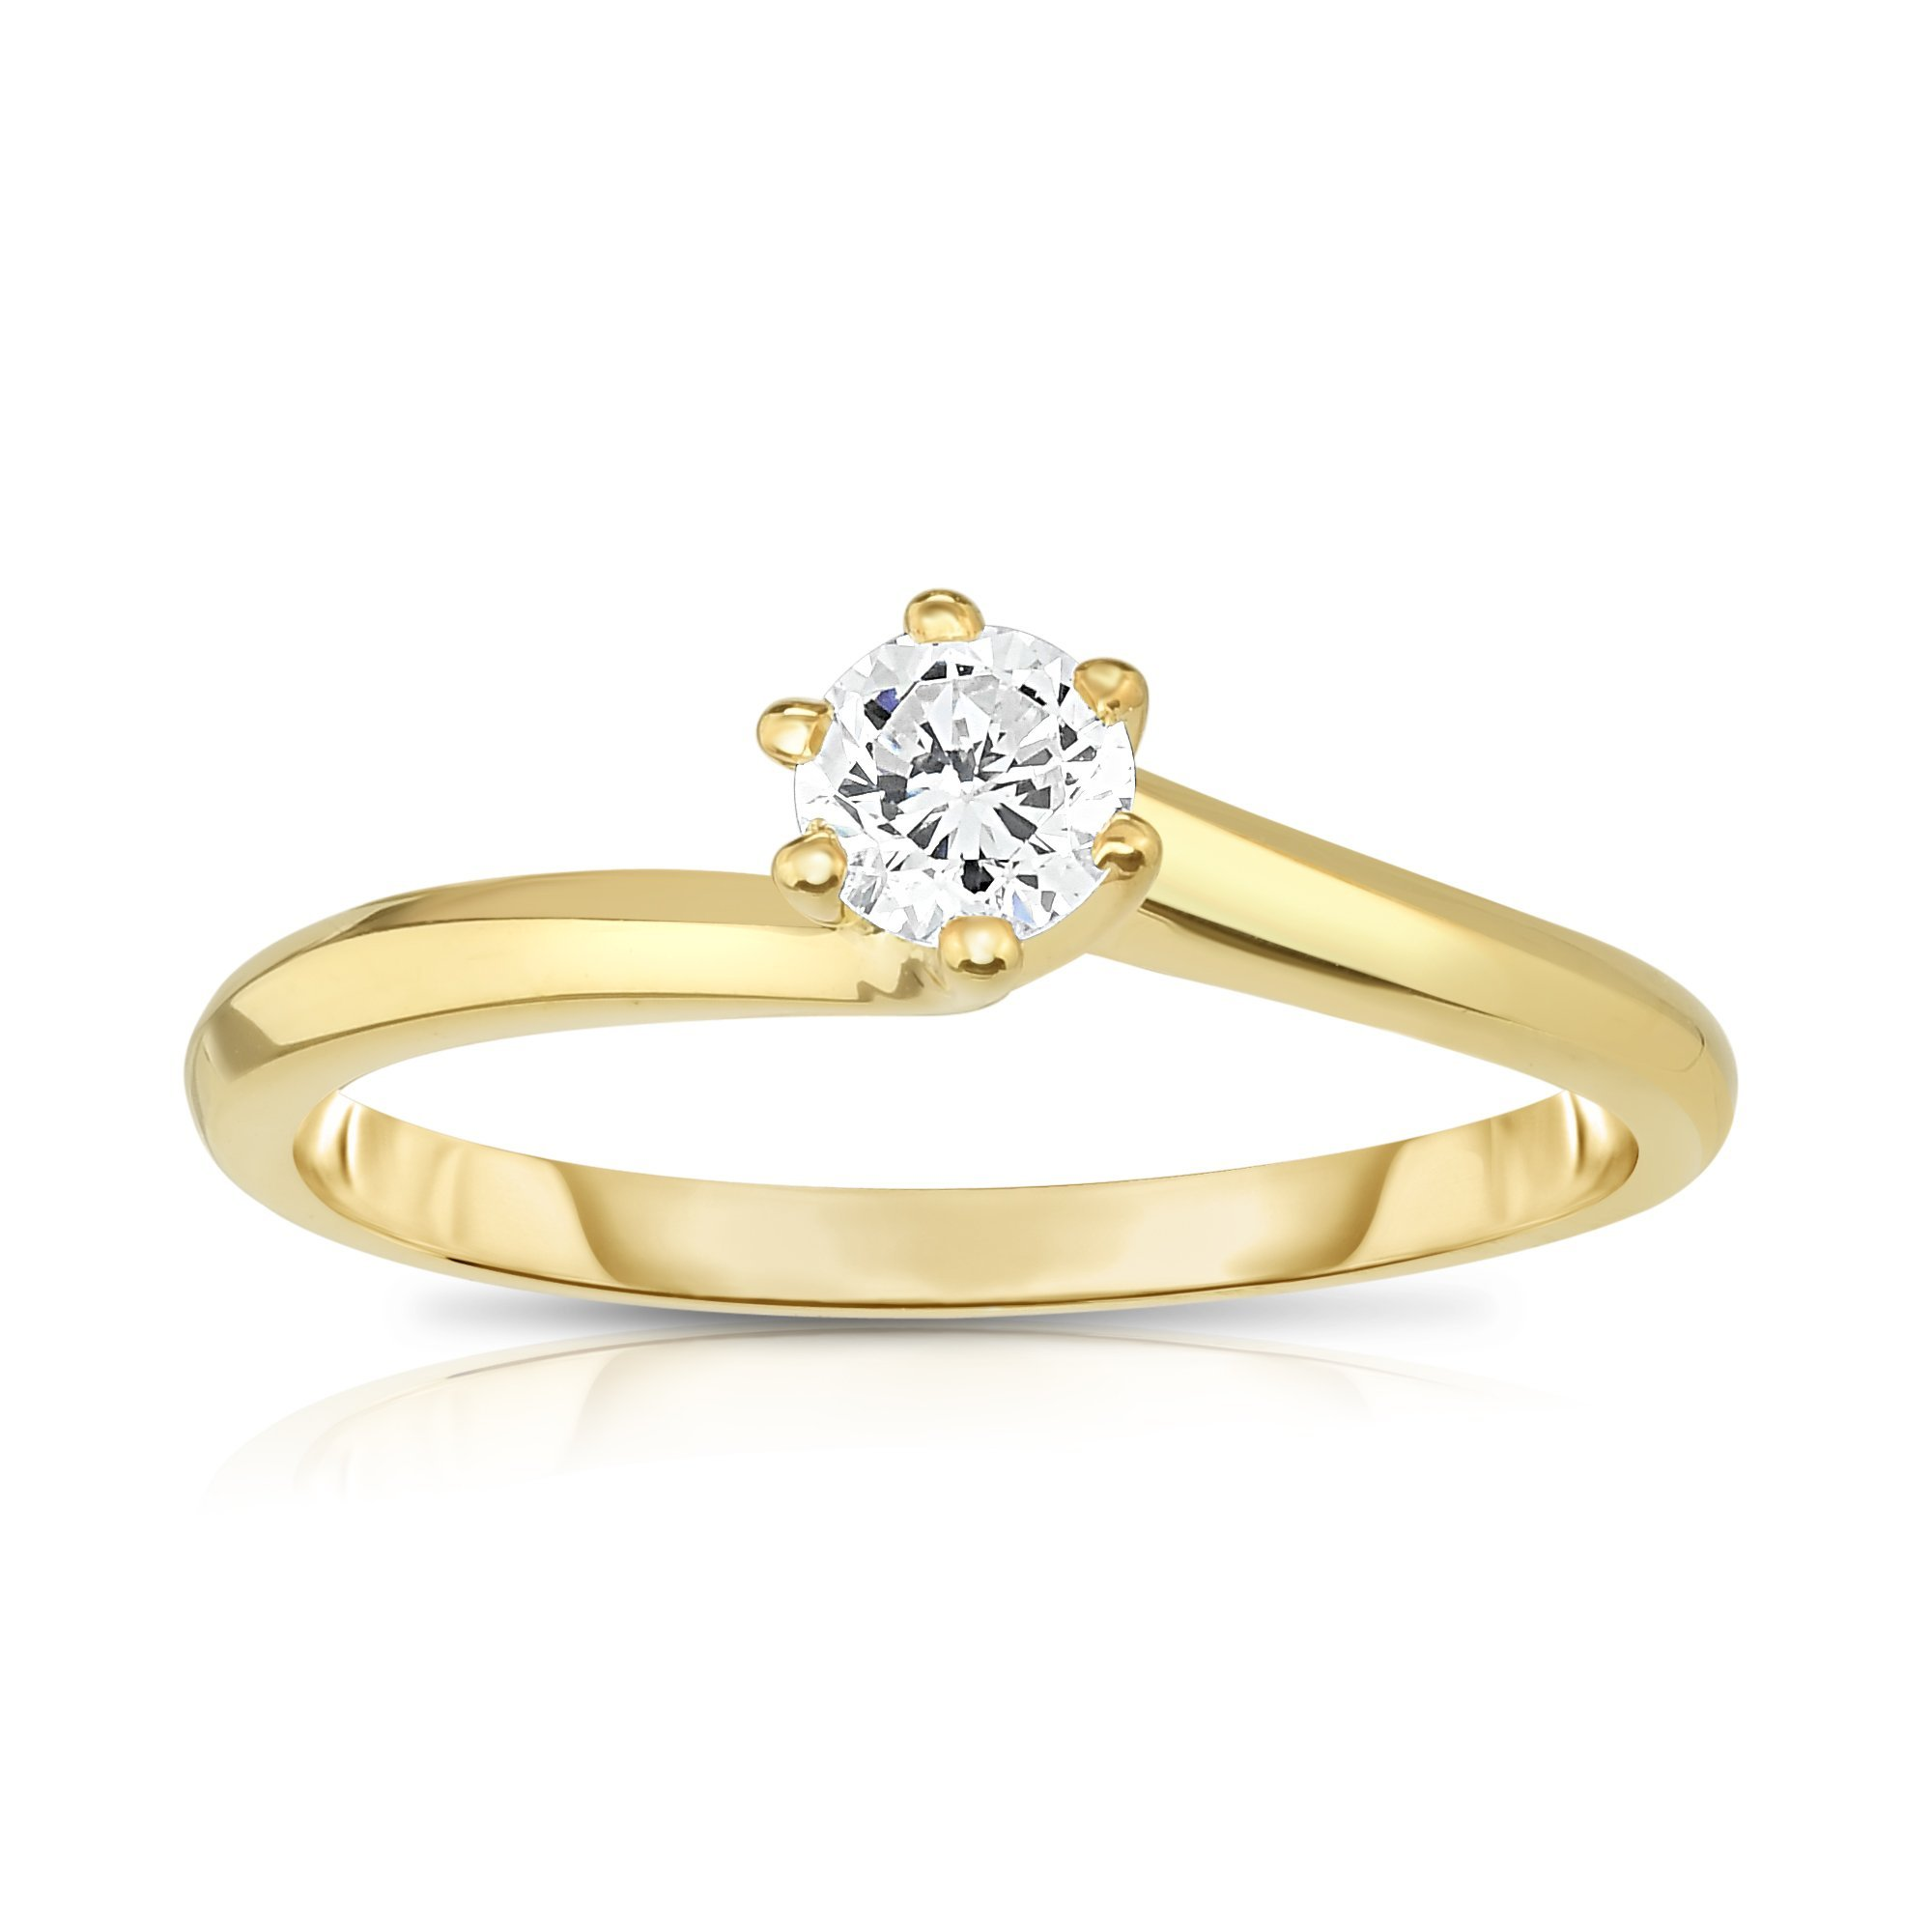 Noray Designs 14K Yellow Gold Diamond (0.25 Ct, SI2-I1 Clarity, G-H Color) 6-Prong Solitaire Ring